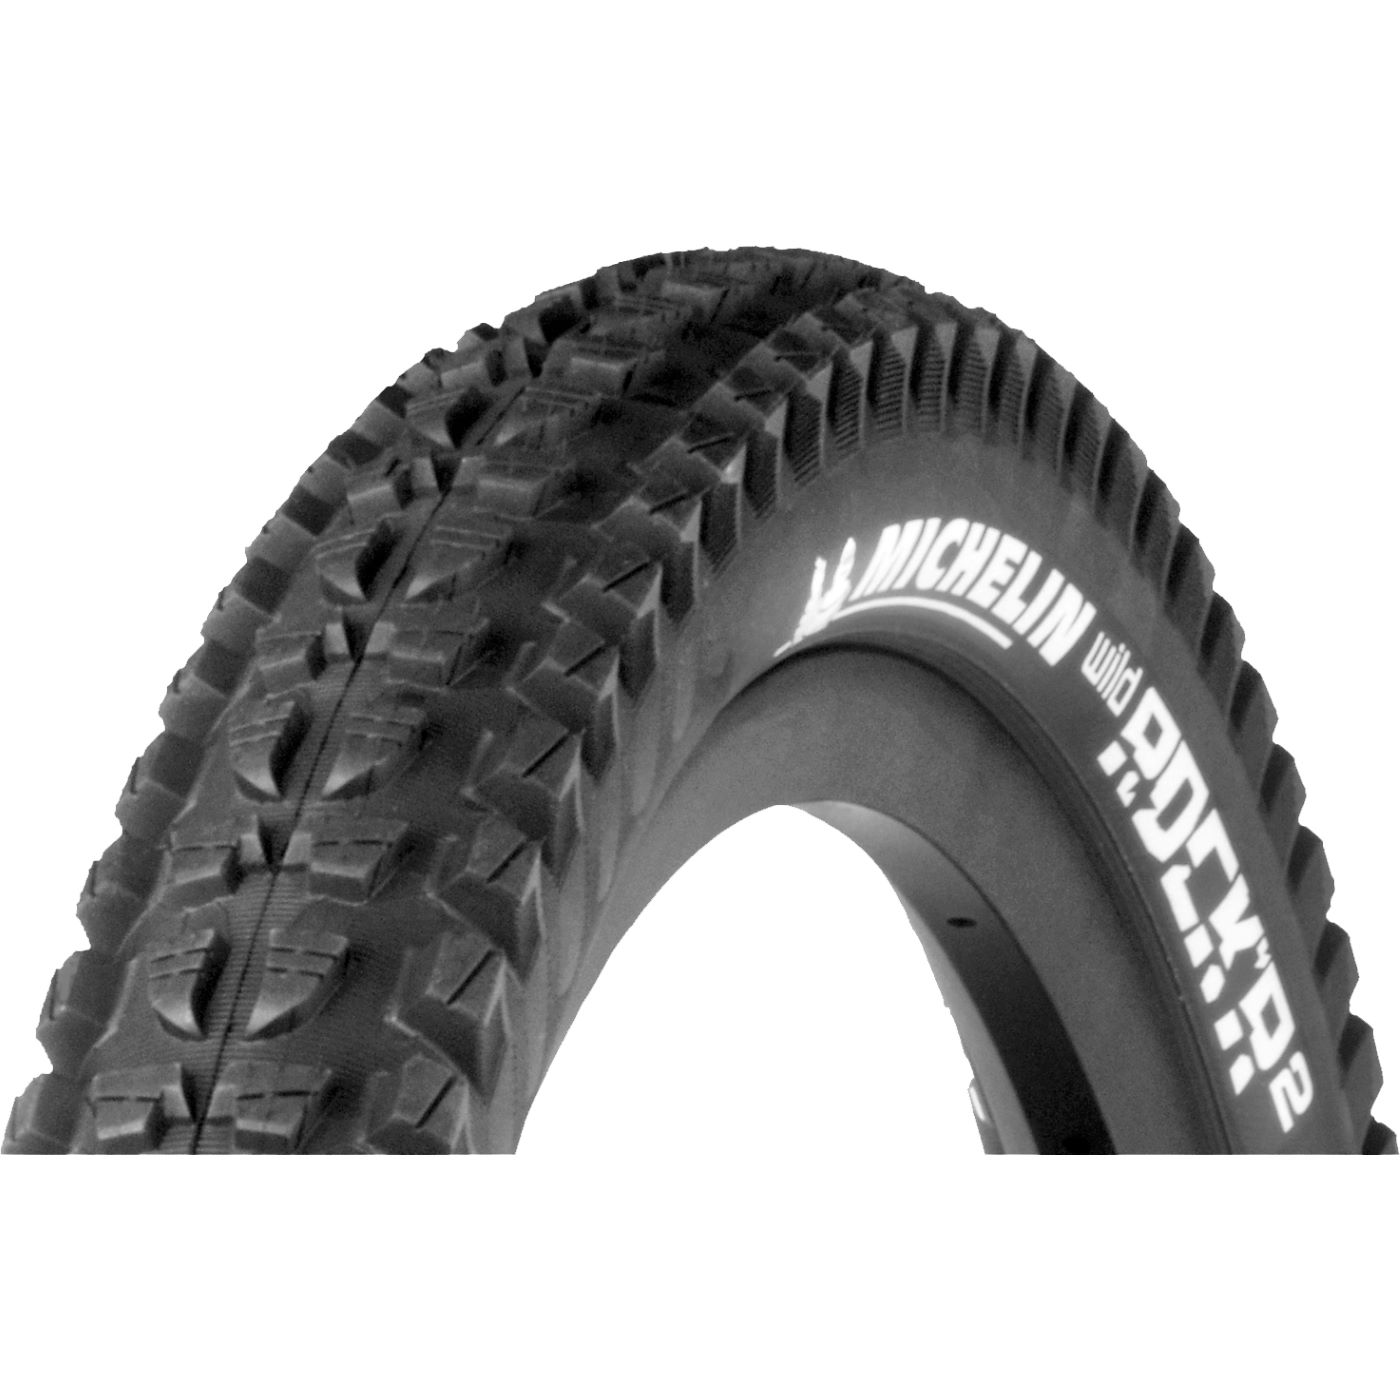 pneus vtt michelin wild rock 39 r2 advanced reinforced gum x 29er tyre wiggle france. Black Bedroom Furniture Sets. Home Design Ideas